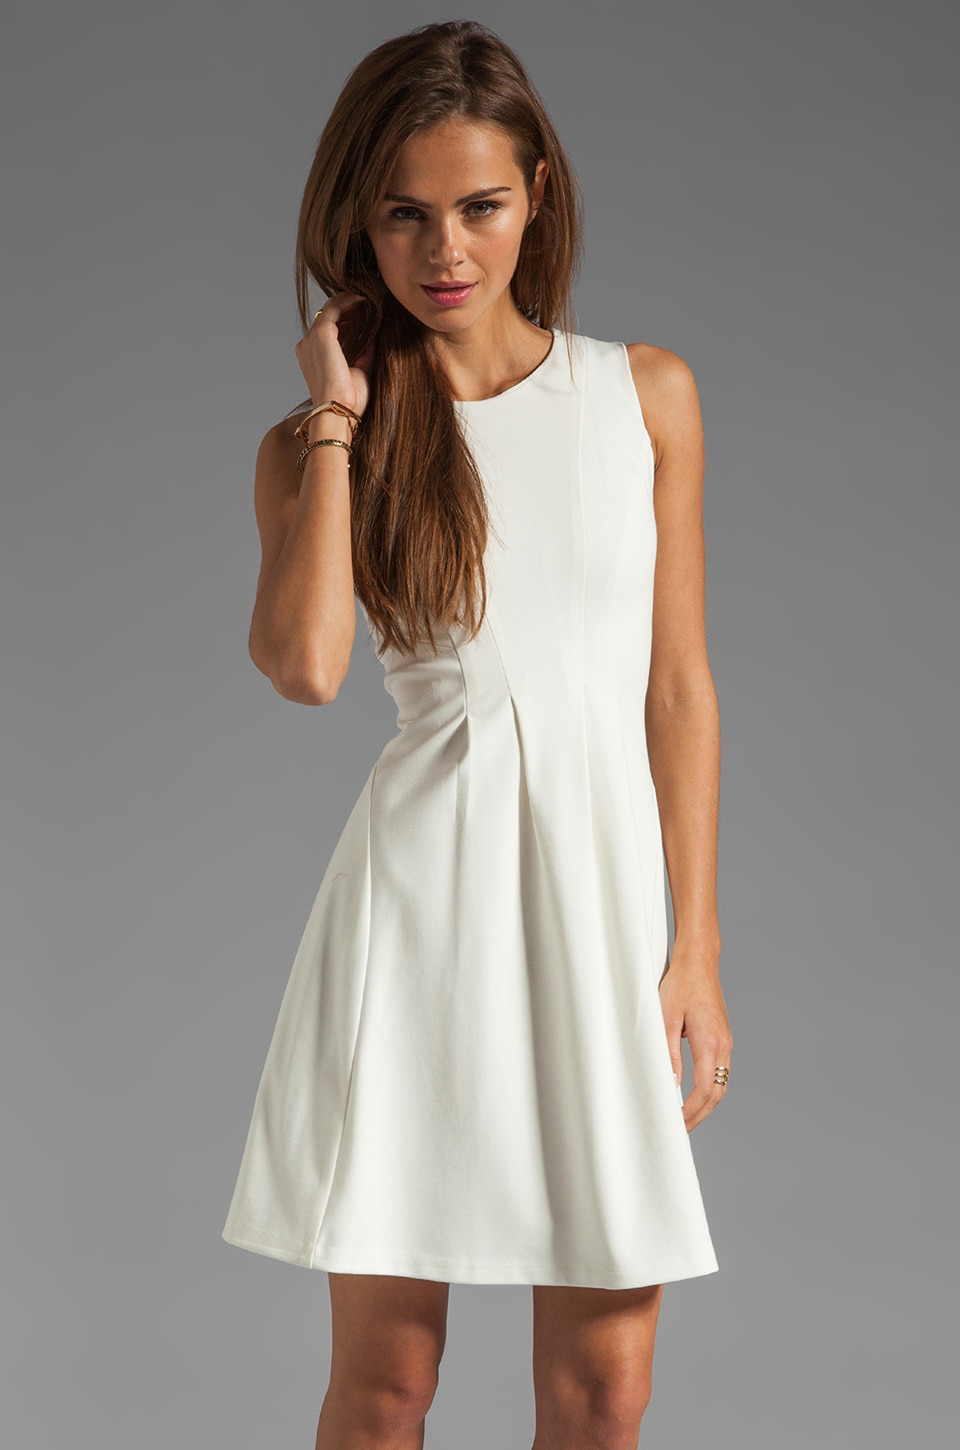 Shoshanna Thalie Dress in Ivory